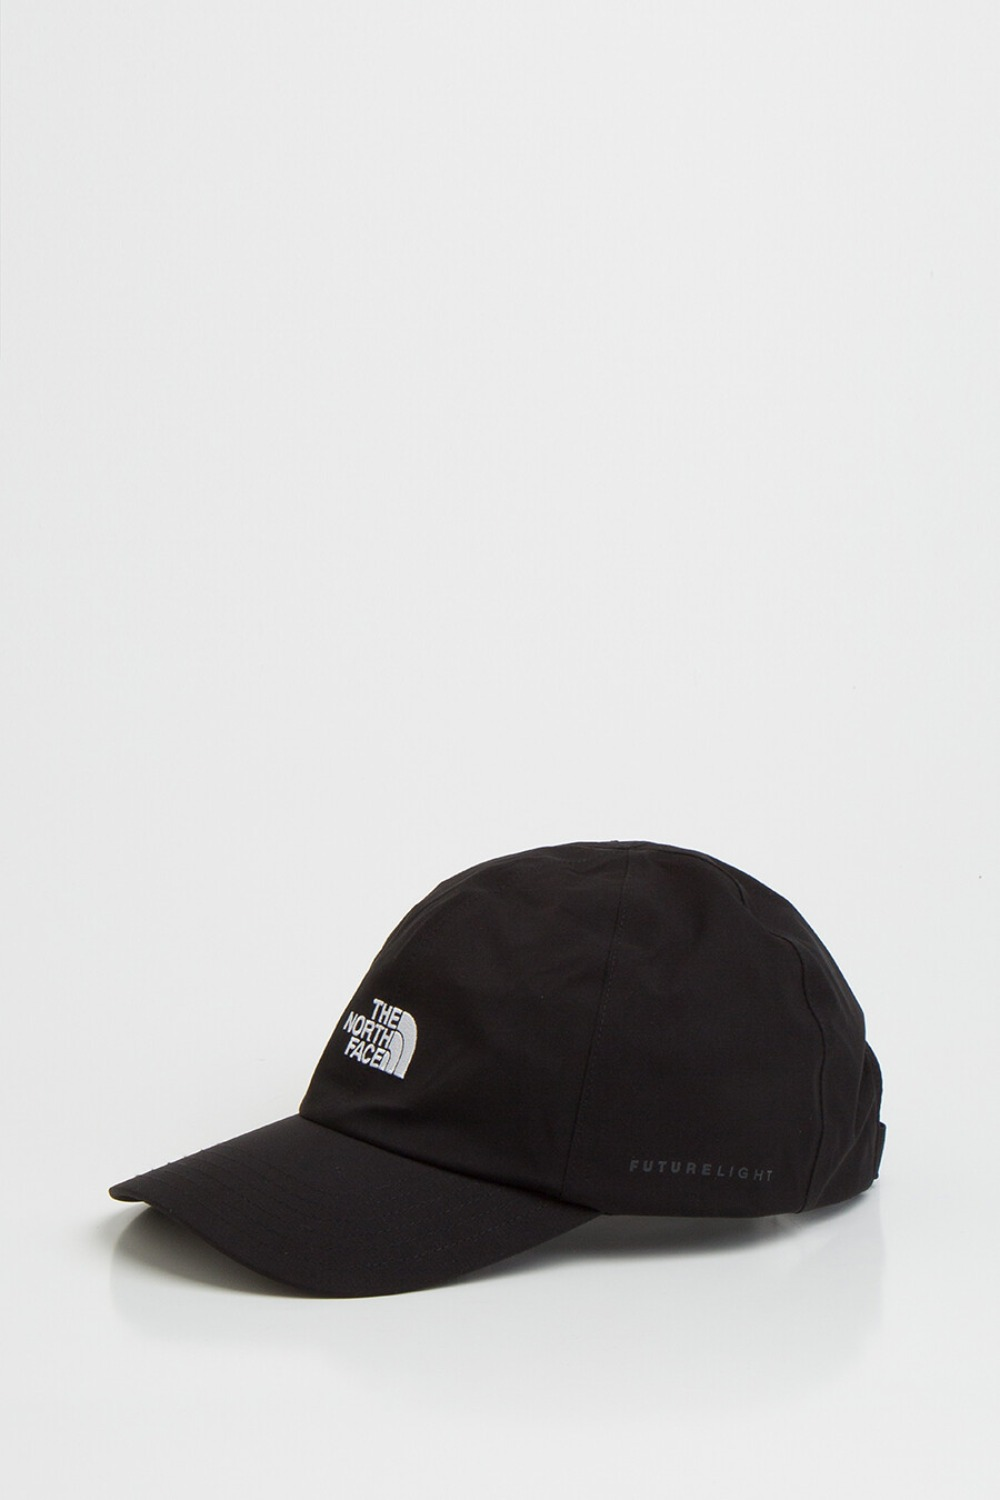 LOGO FUTURELIGHT HAT BLACK